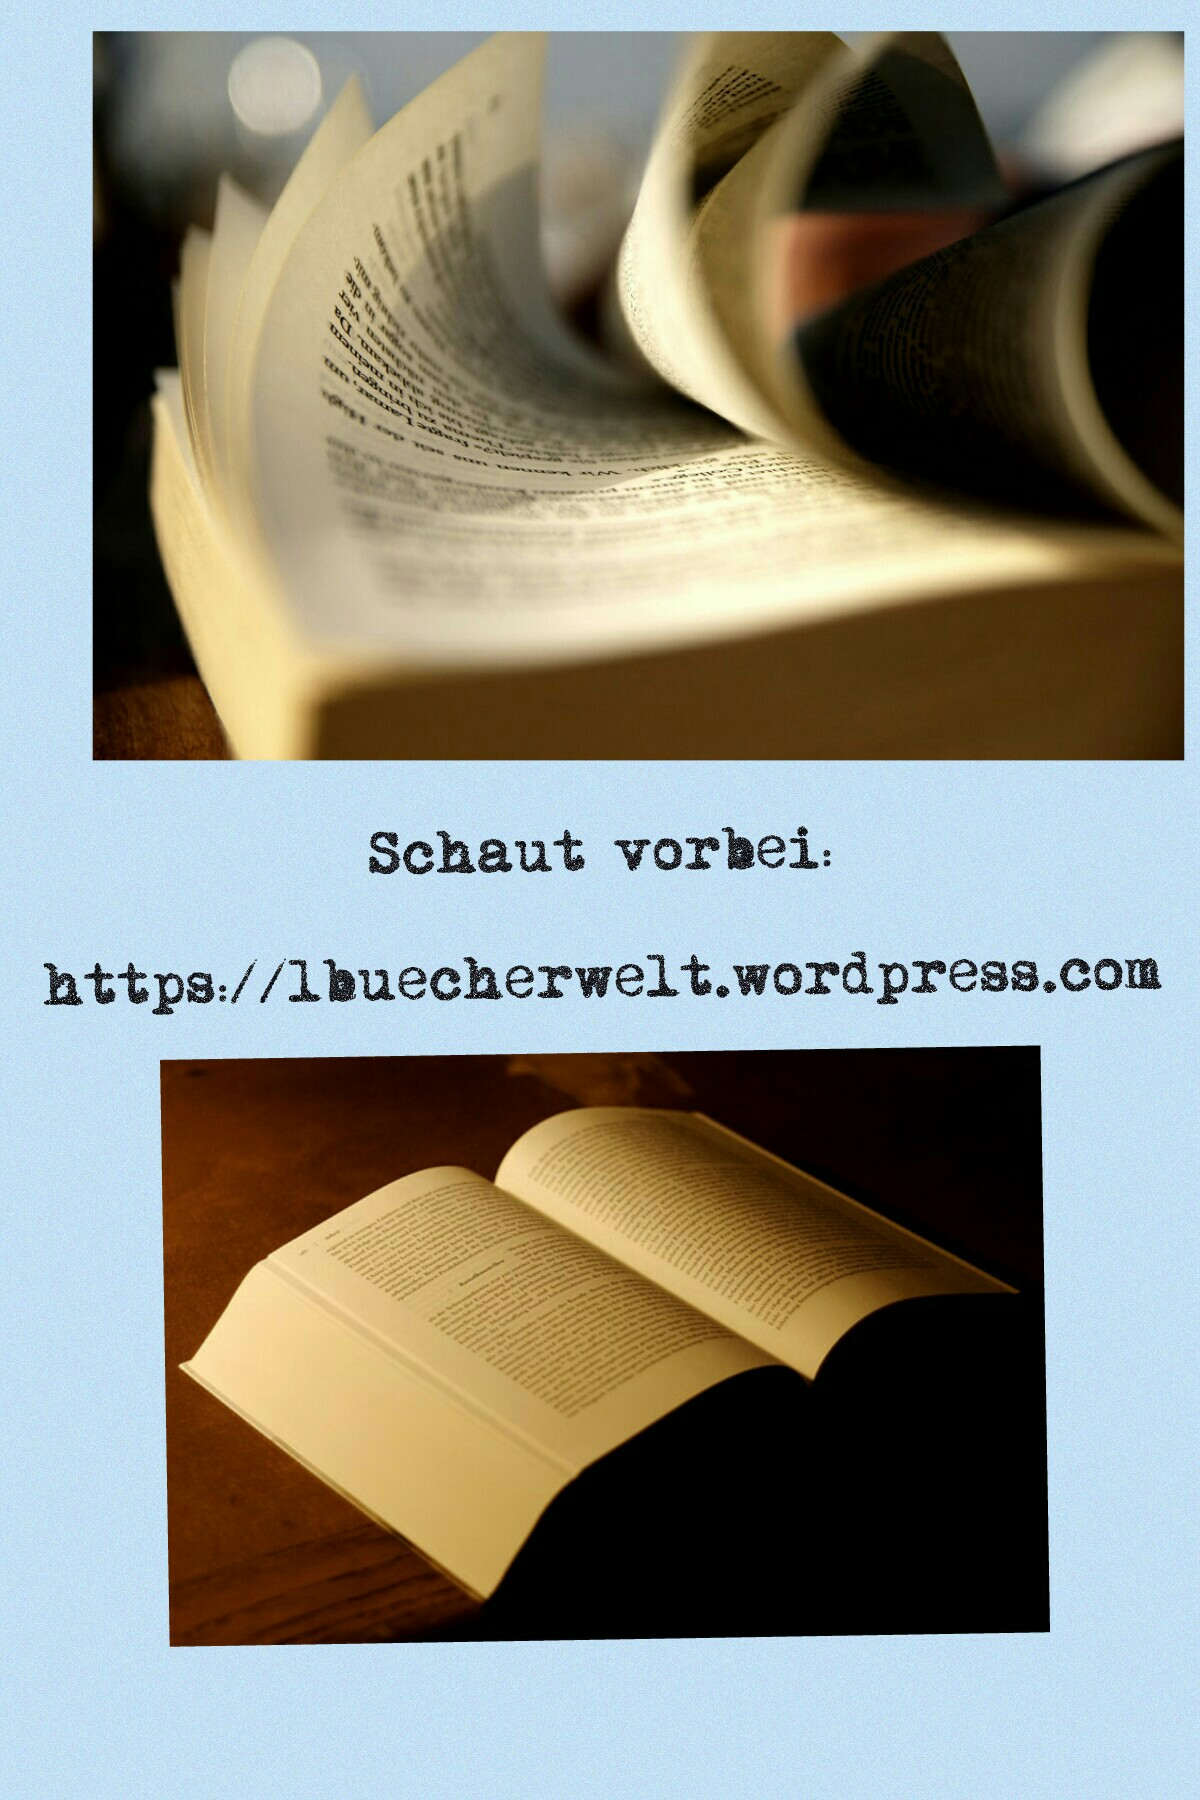 Meine Webseite: https://lbuecherwelt.wordpress.com